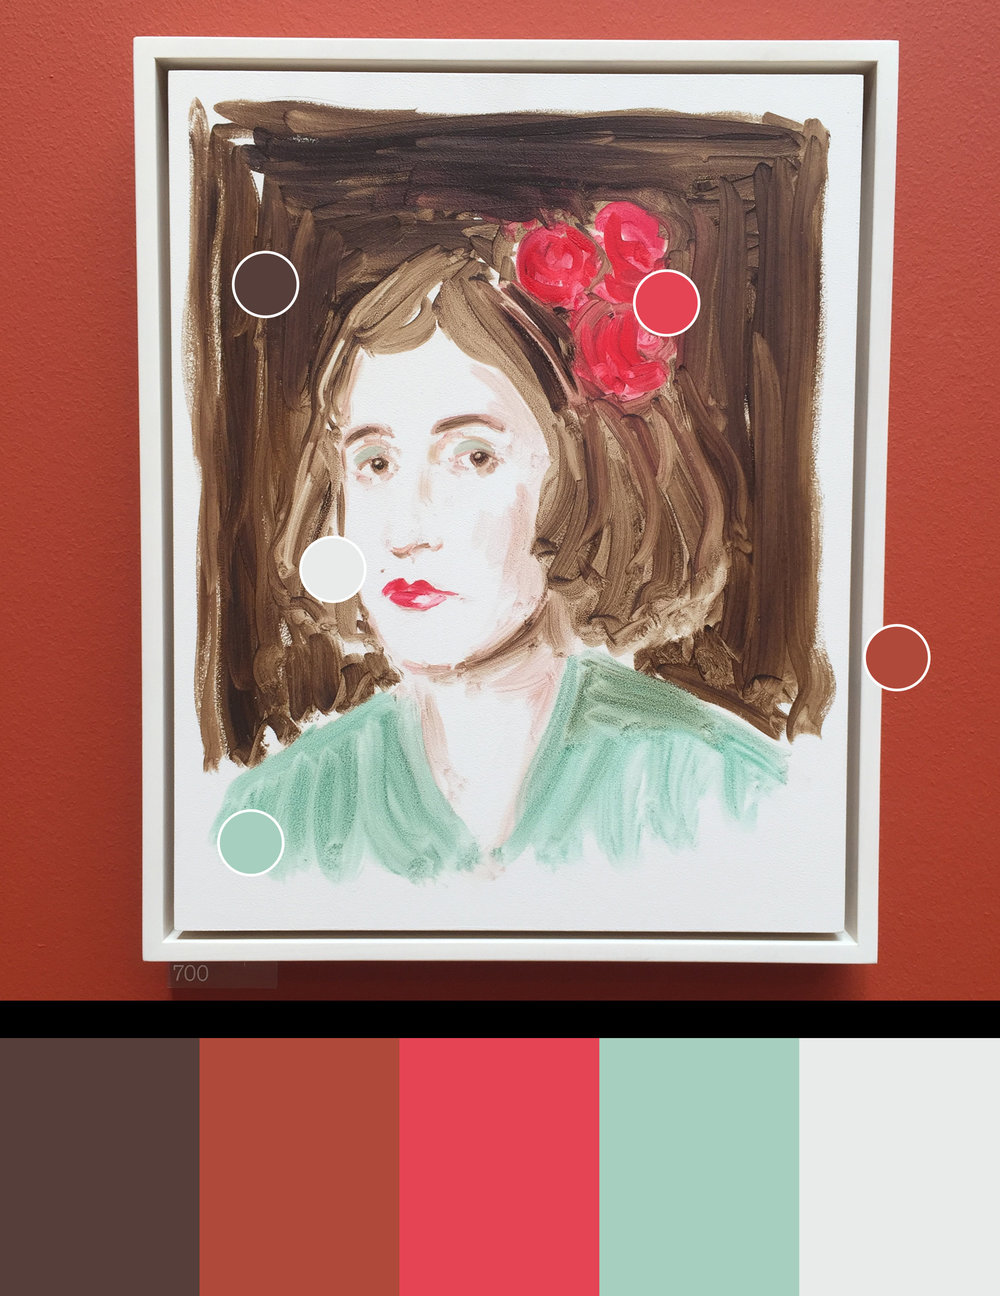 Marcel Duchamp as Rrose Selavy 3  - Painting by Annie Kevans